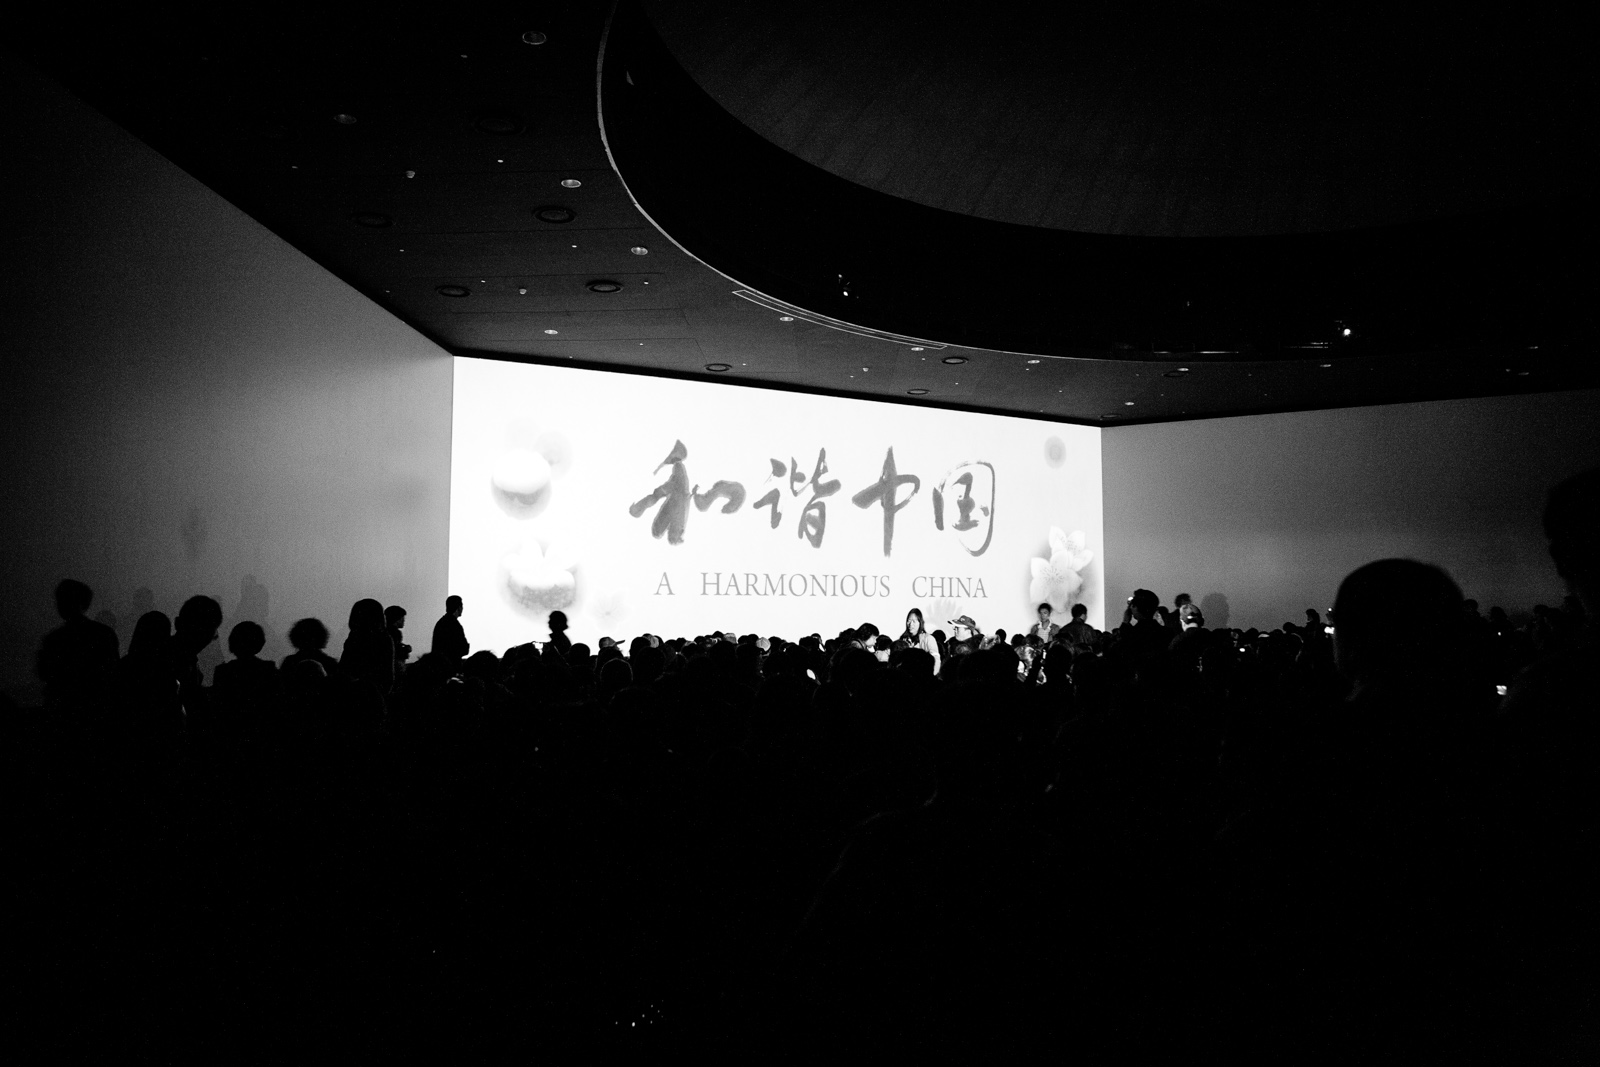 """Removing Myself from My Own Photos: What I Learned While Editing and Sequencing My """"Harmonious China"""" Project"""